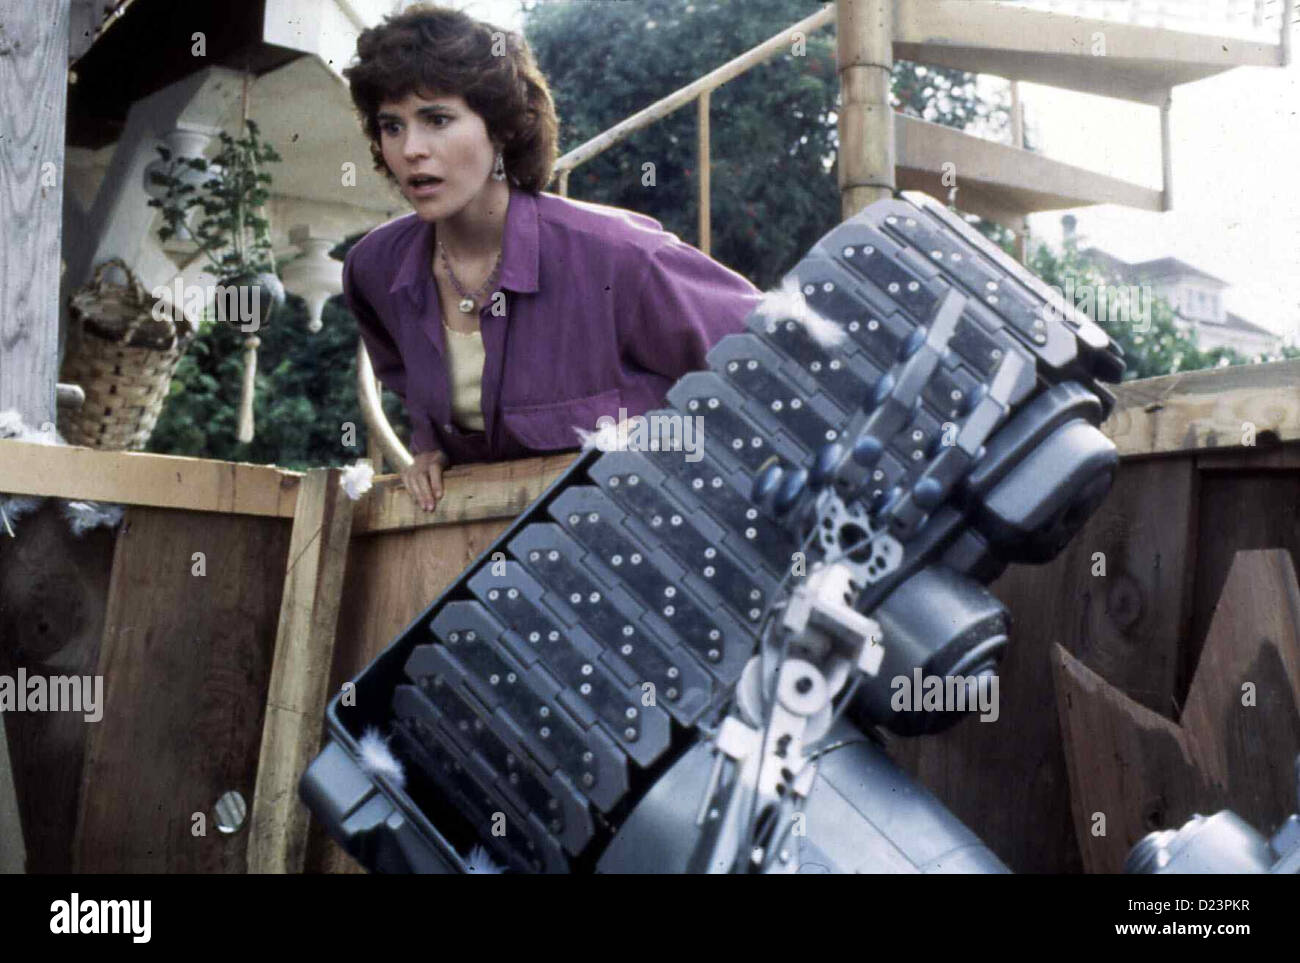 Short Circuit 1986 Stock Photos Images 10 Johnny 5 From And 2 Nummer Lebt Ally Sheedy Und Roboter Local